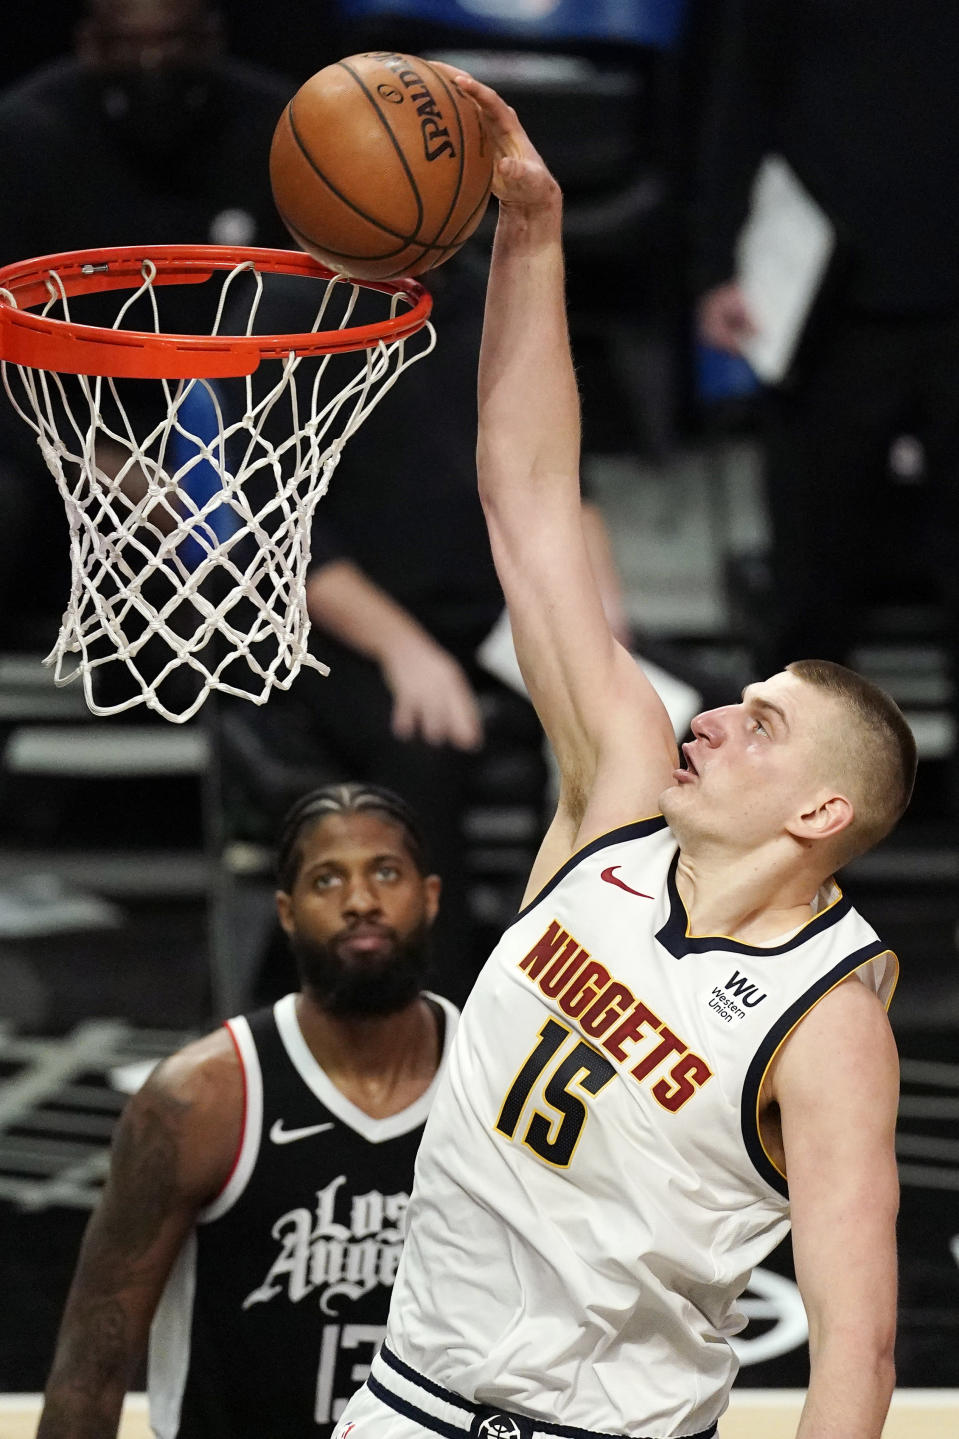 Denver Nuggets center Nikola Jokic, right, dunks as Los Angeles Clippers guard Paul George watches during the second half of an NBA basketball game Saturday, May 1, 2021, in Los Angeles. (AP Photo/Mark J. Terrill)